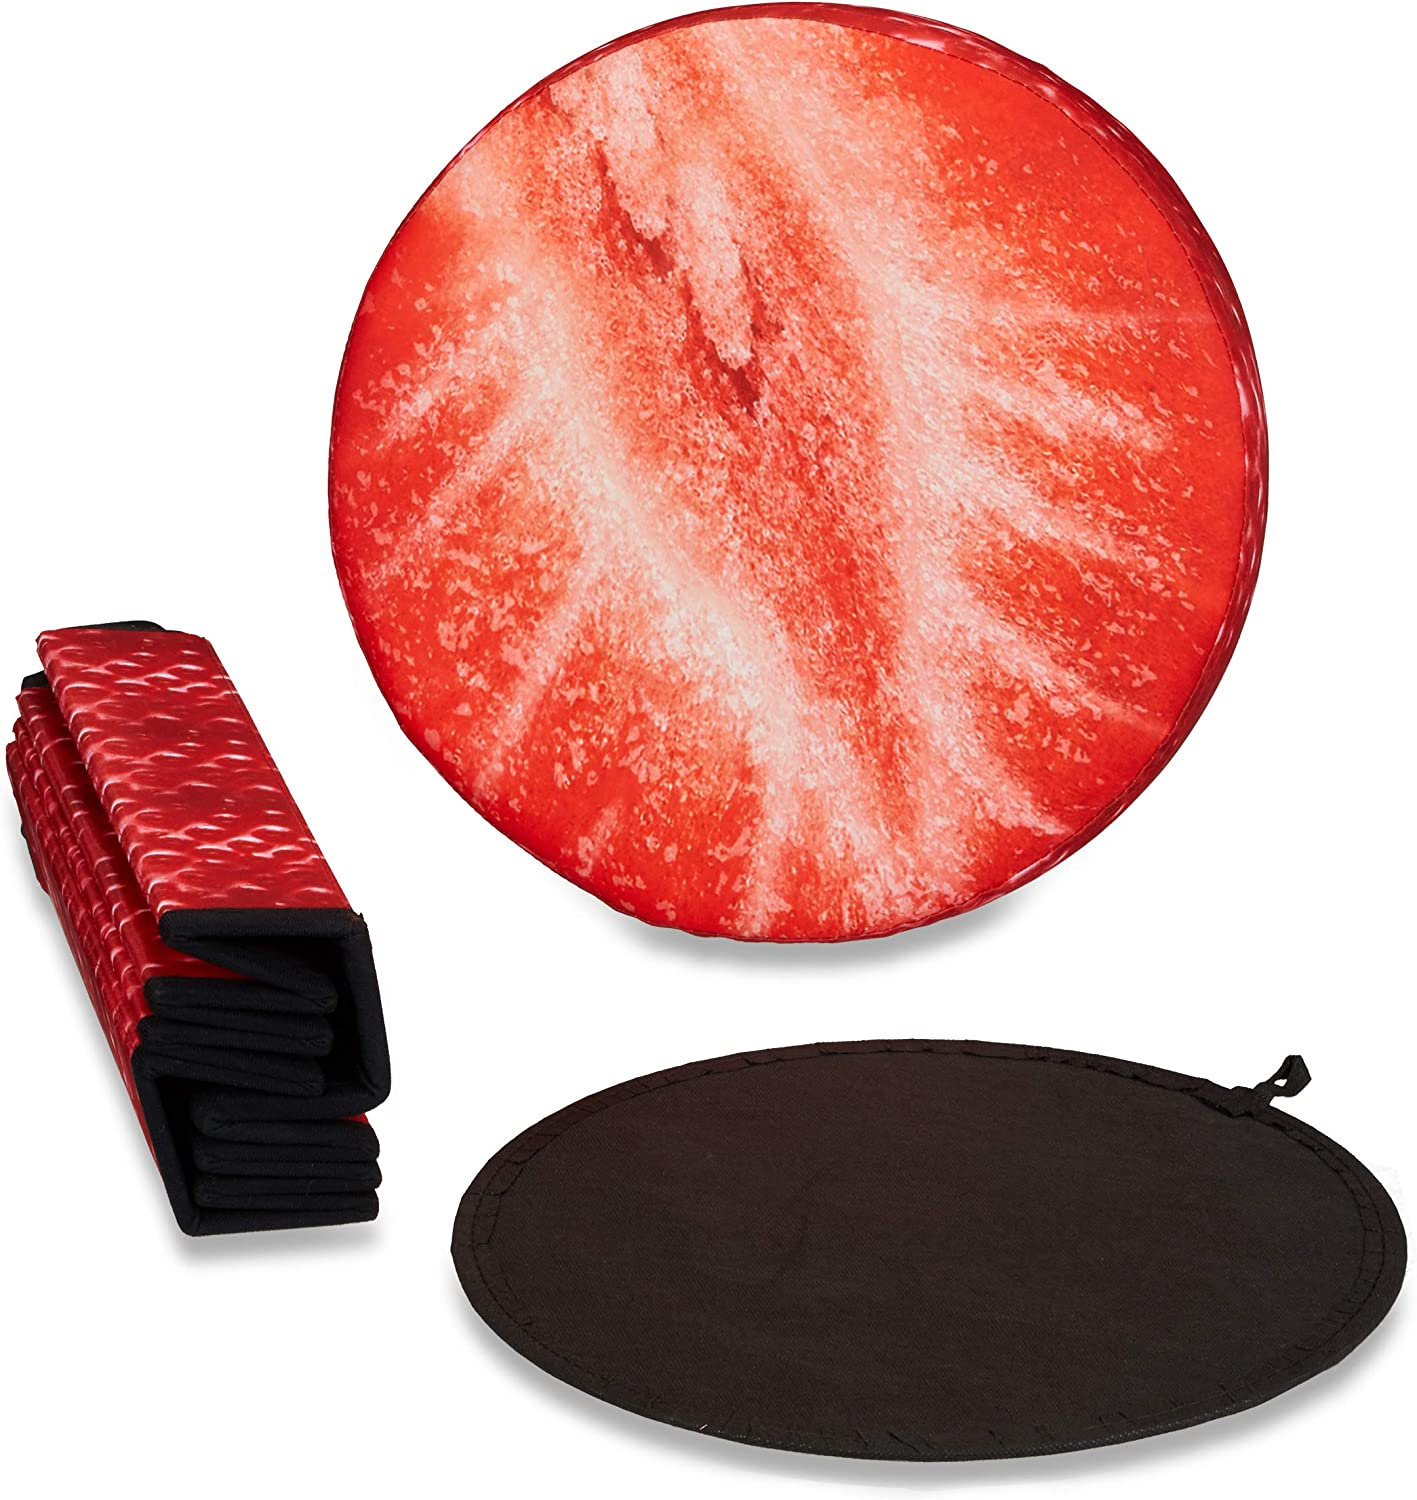 Relaxdays Folding Ottoman Seat with Storage Compartment, Round with Fruit Design, 38 x 38.5 x 38.5 cm, 30 L, Kiwi Strawberry Red